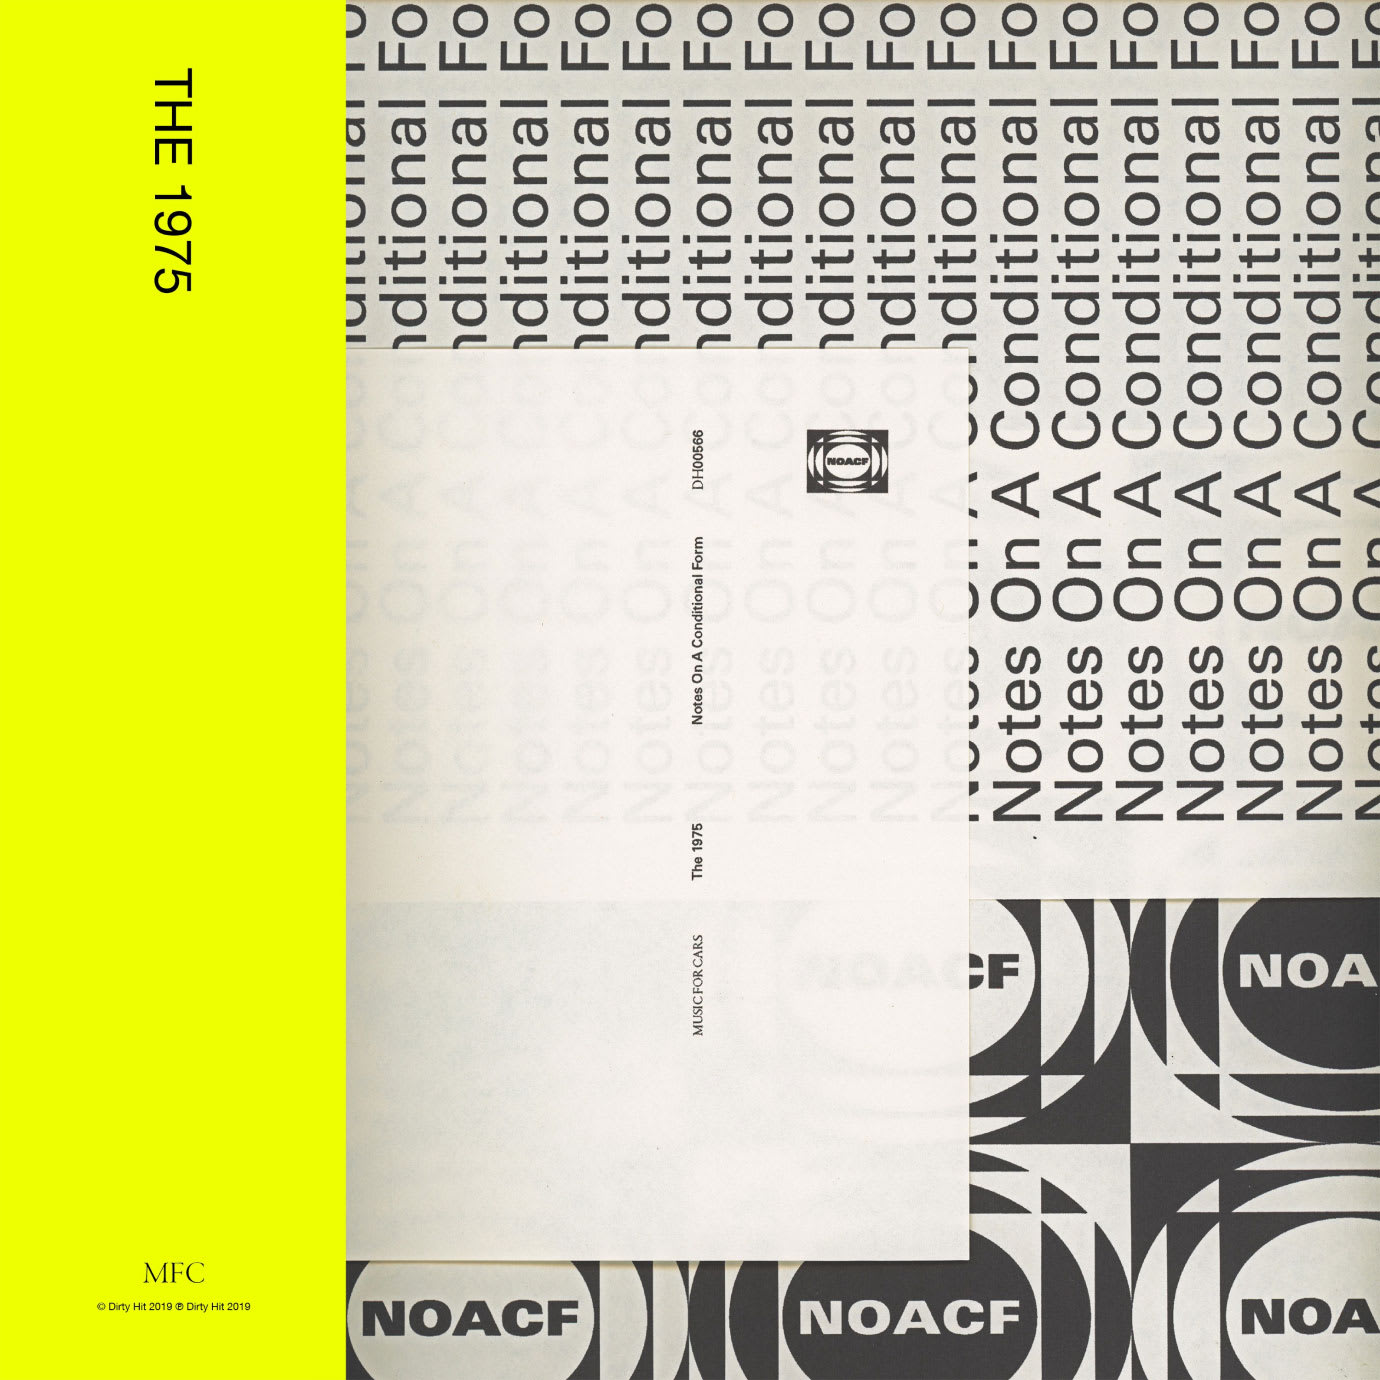 A grey and fluorescent yellow graphic album cover with The 1975 written on it.